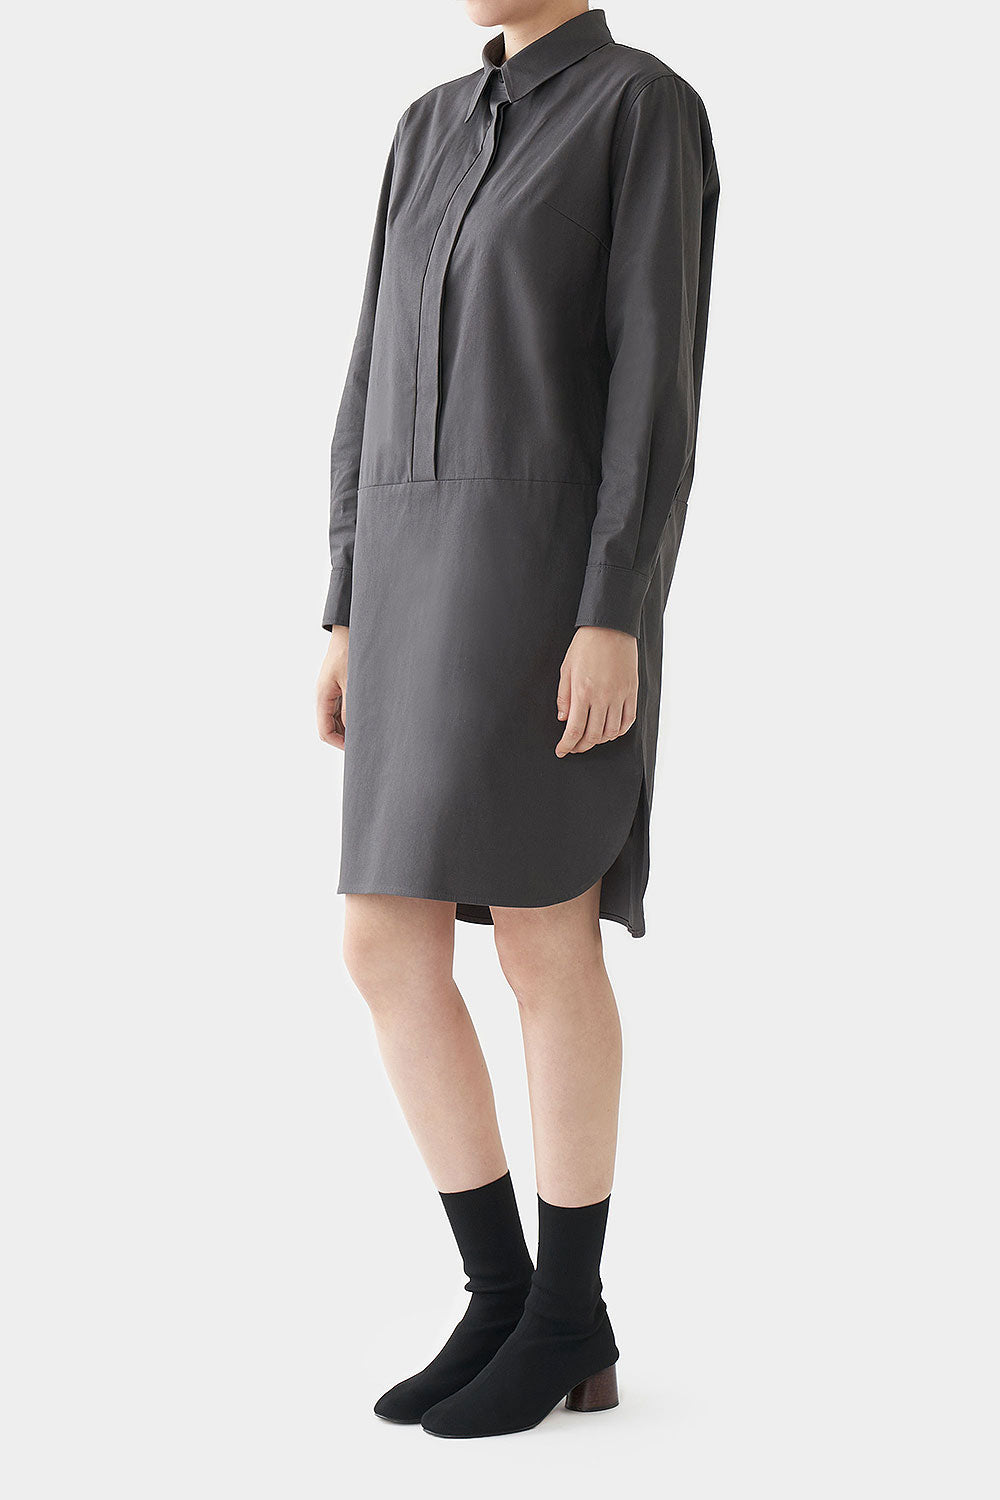 CHARCOAL JADE COTTON DRESS